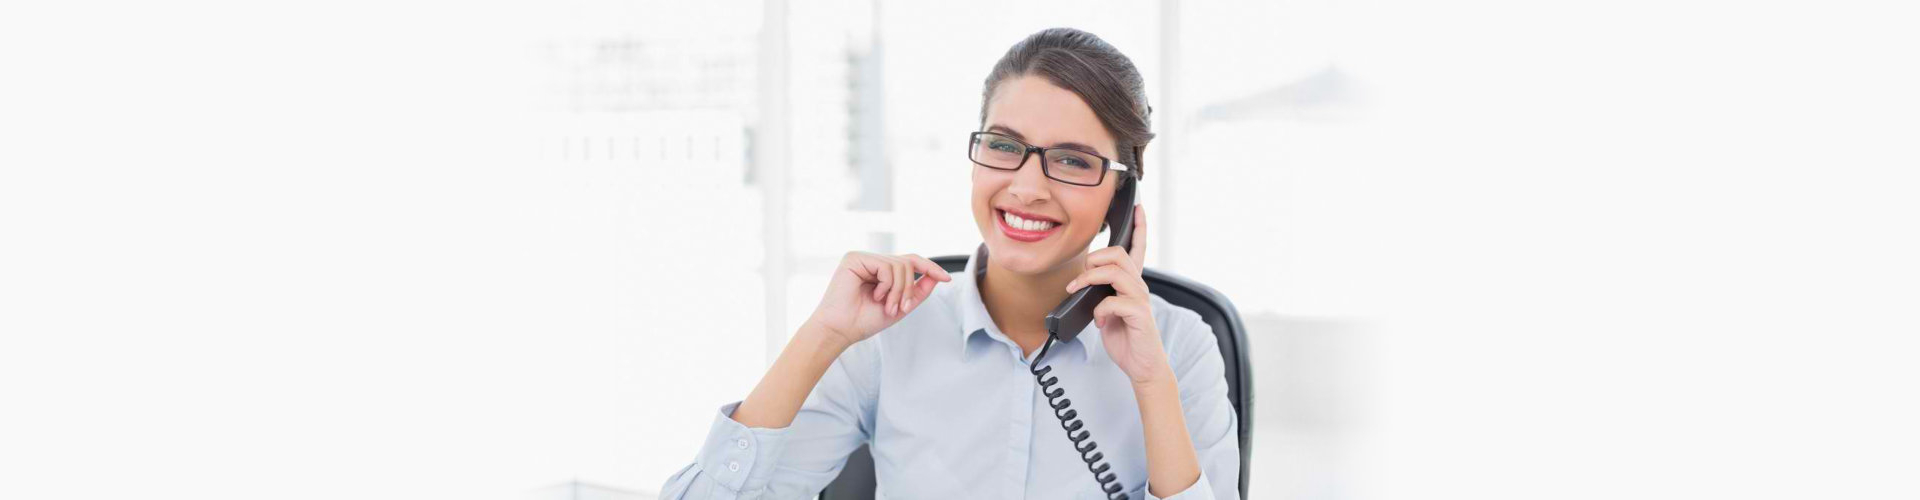 a lady smiling while having a call